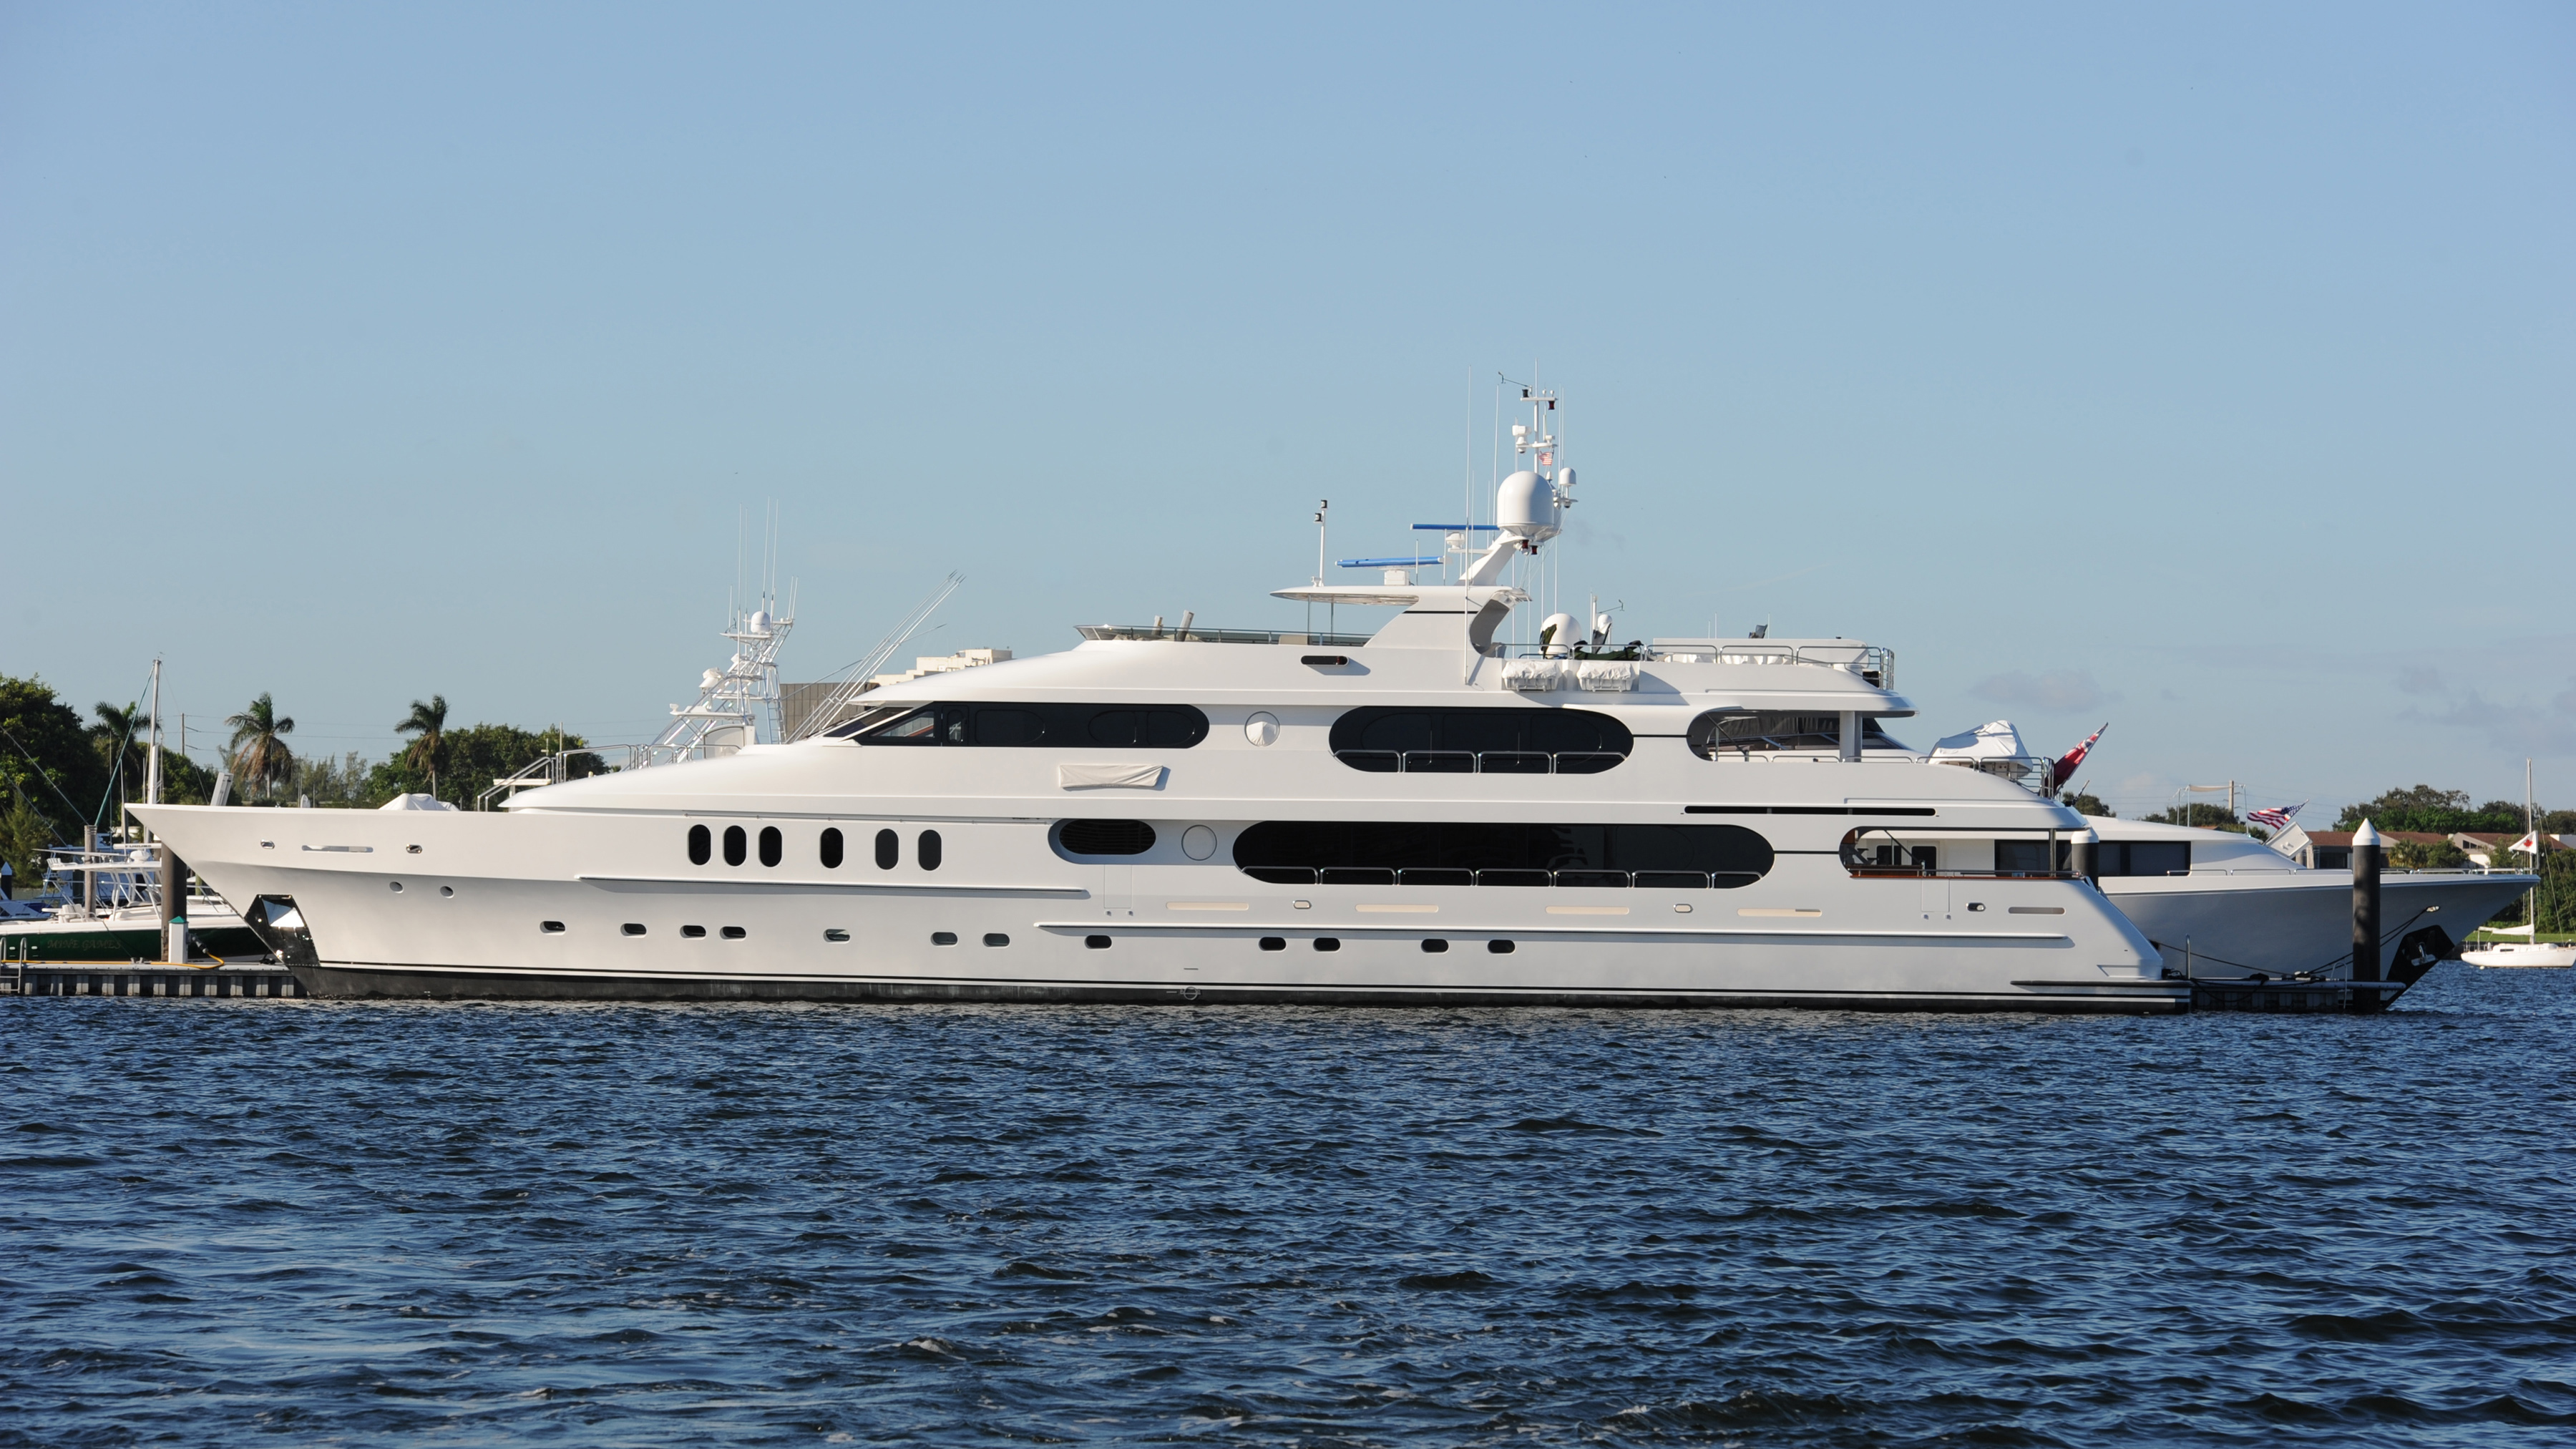 Tiger Woods moors $20m yacht 'Privacy' in marina ahead of US Open